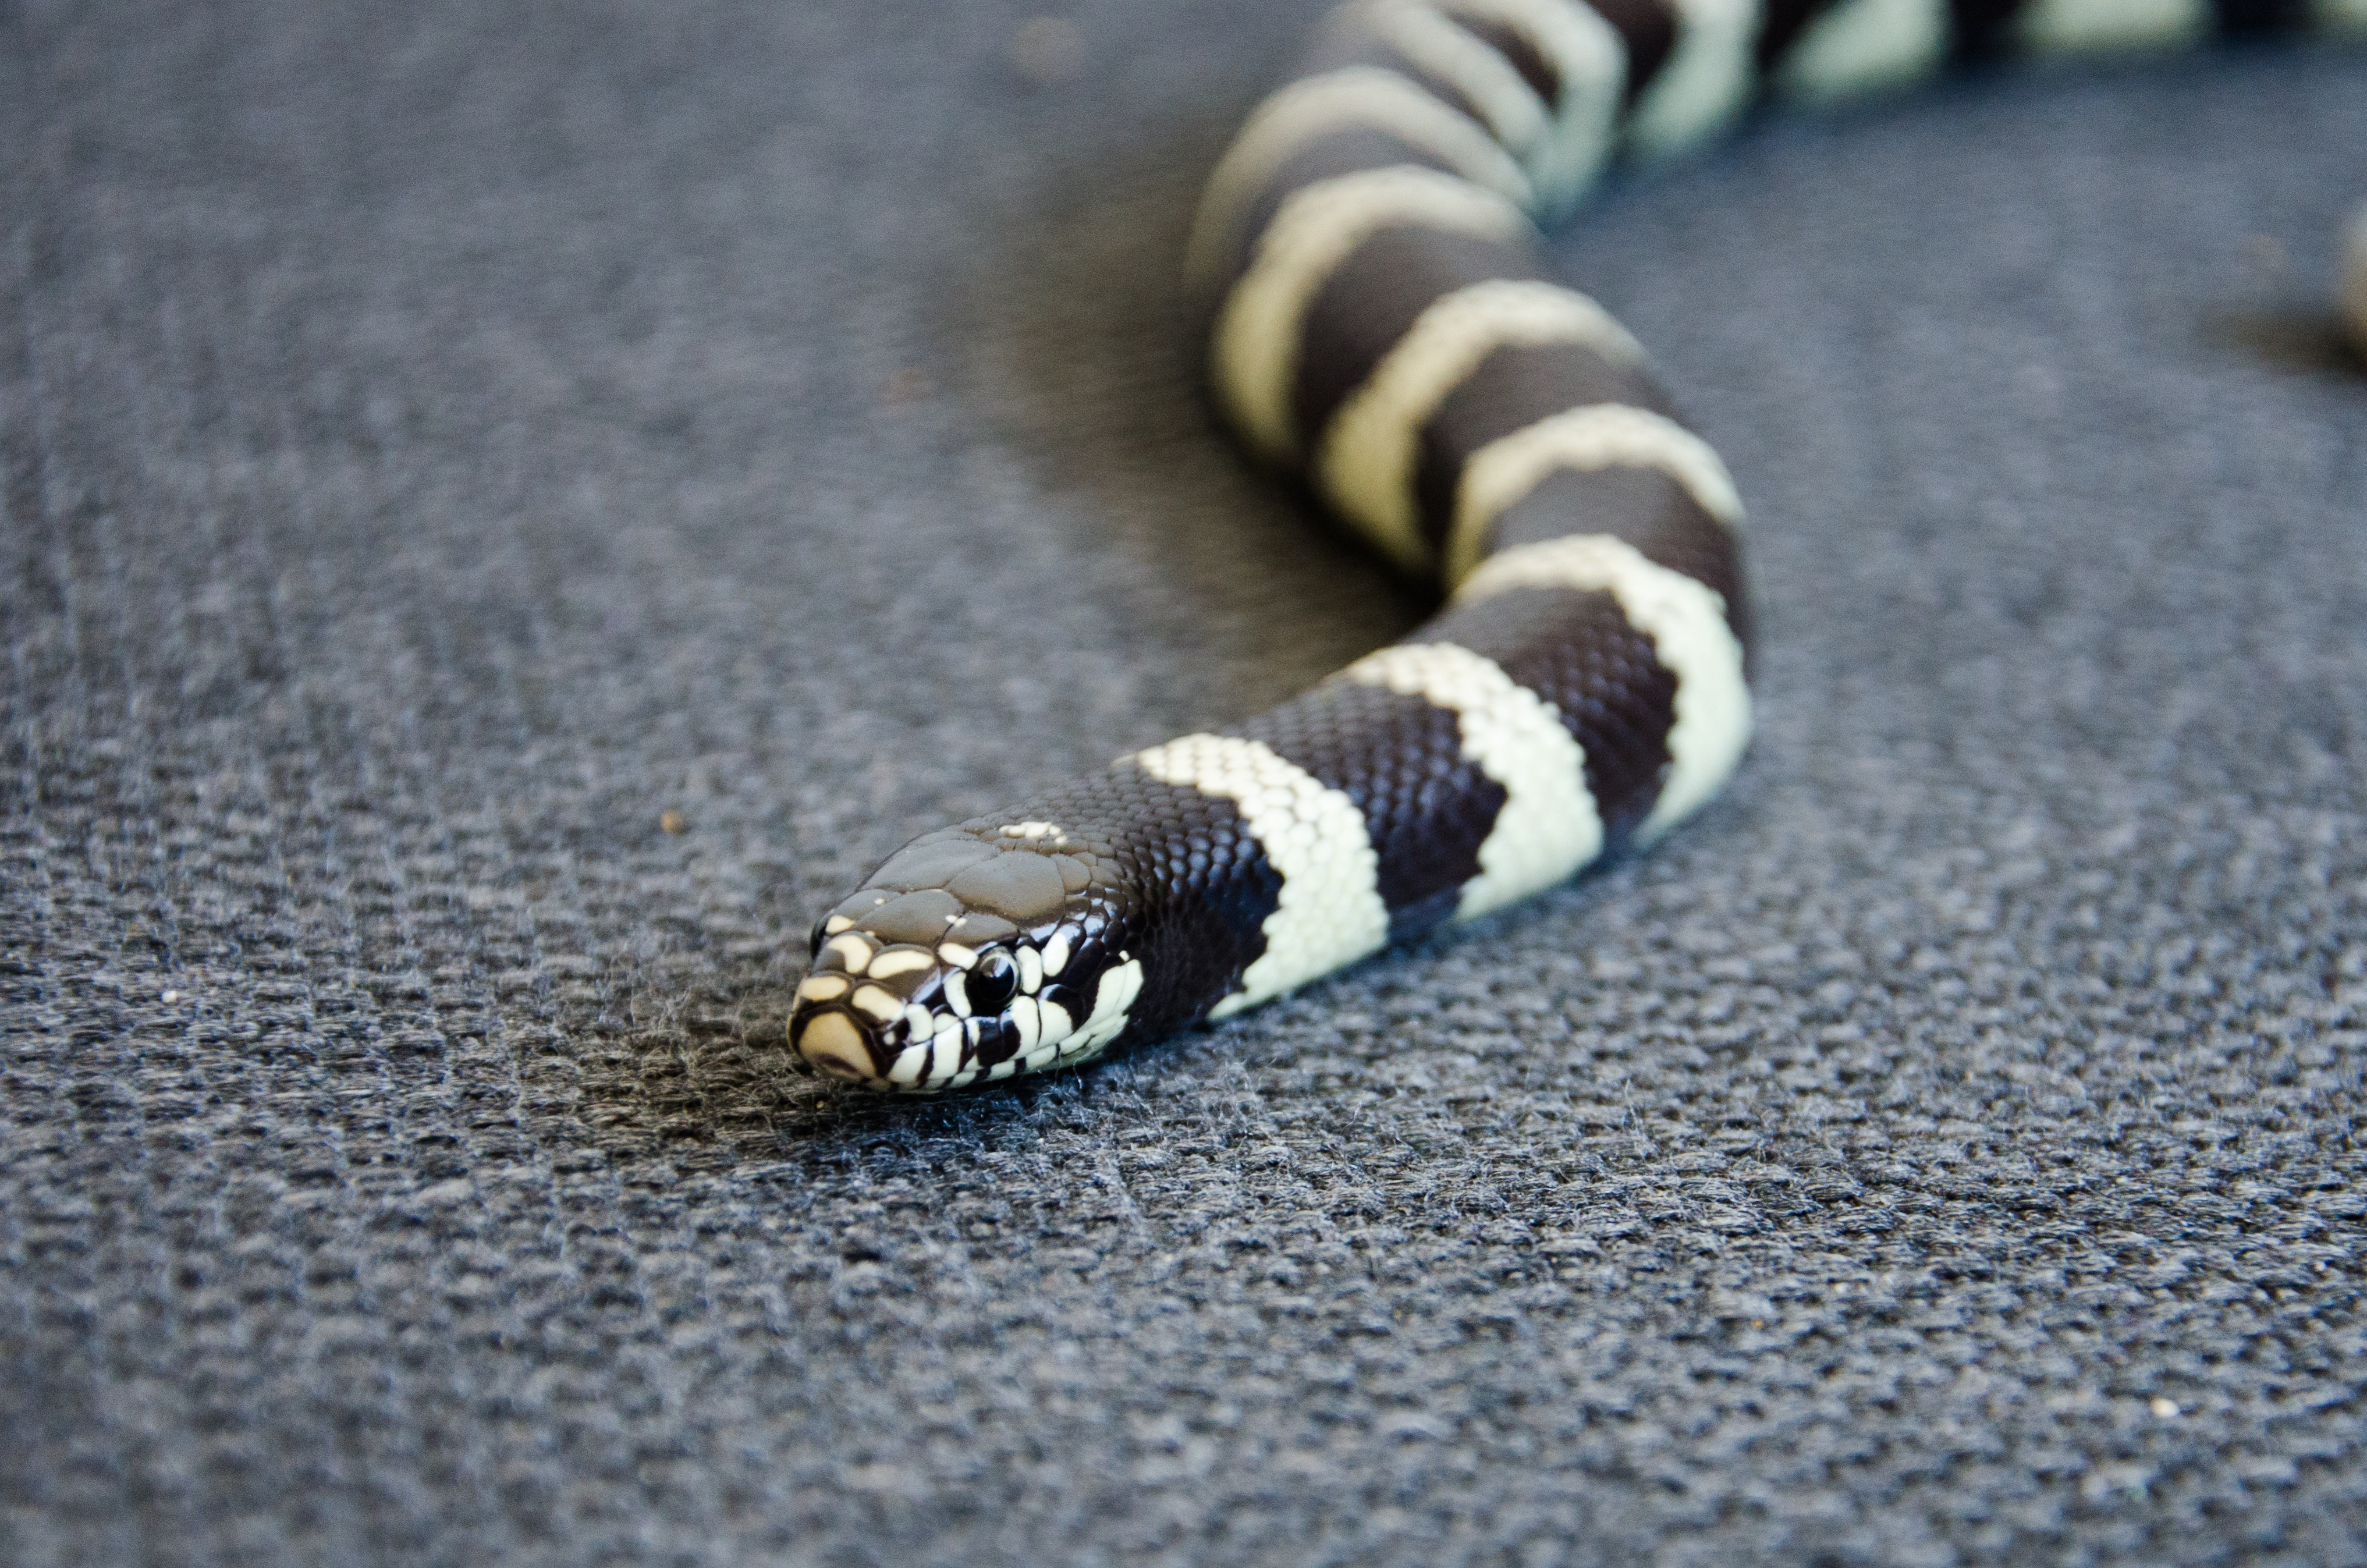 50637 download wallpaper Animals, Snake, Reptile, Head, Color screensavers and pictures for free